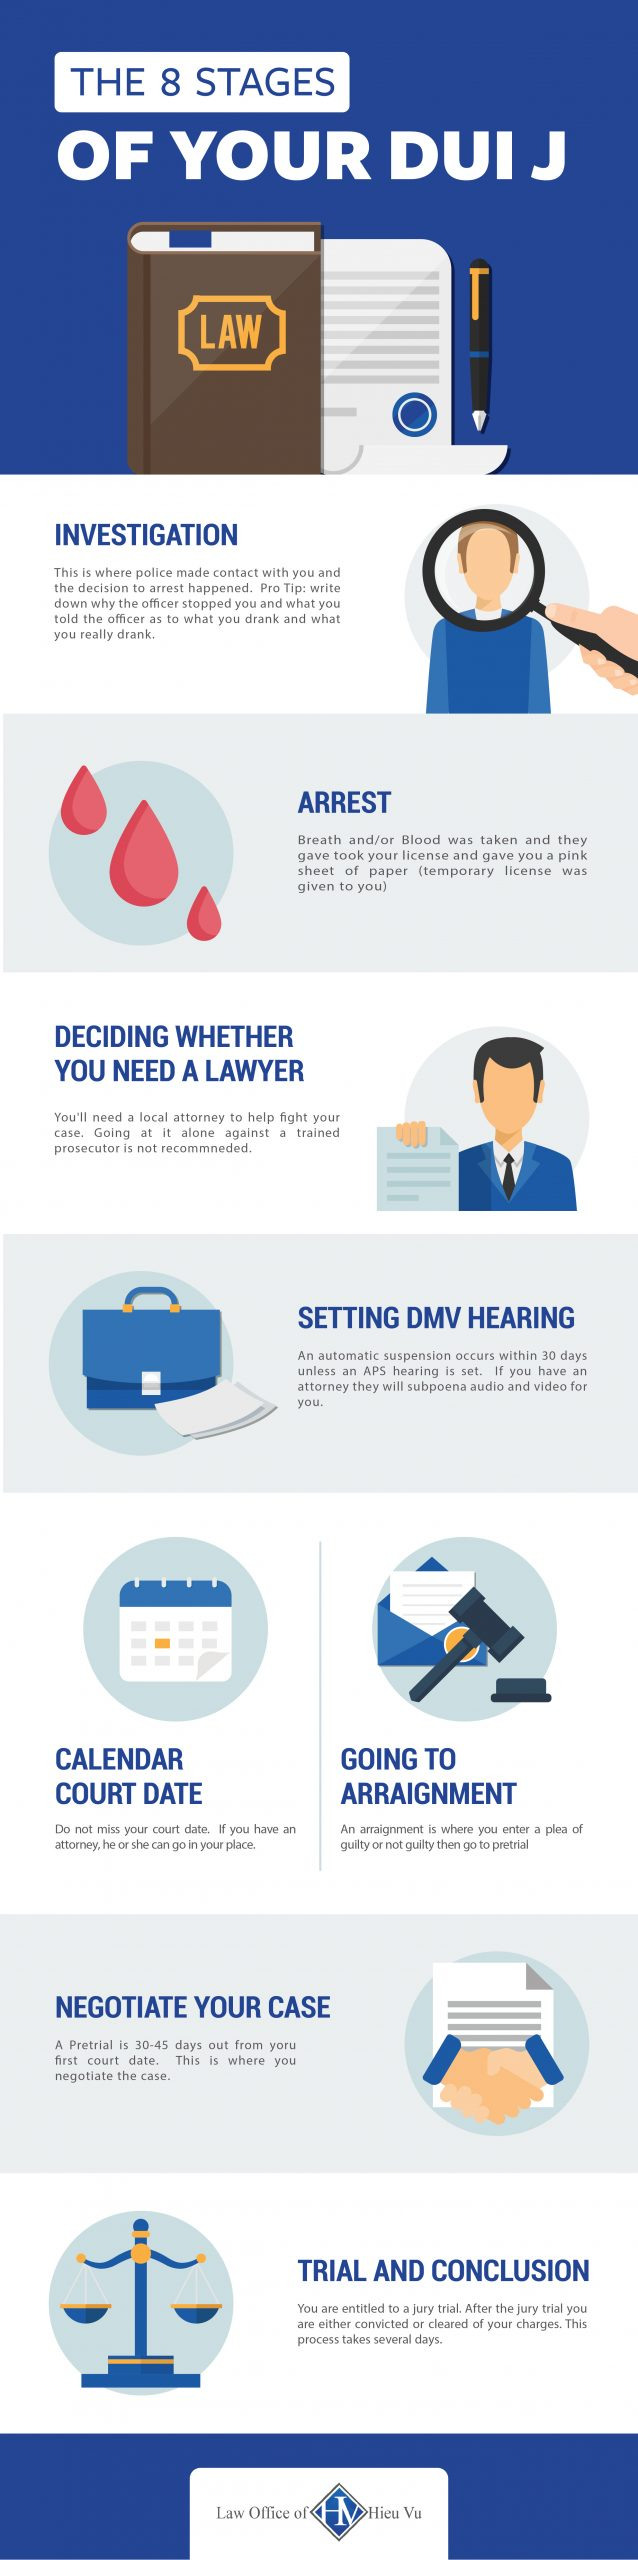 Shows different stages of a DUI process